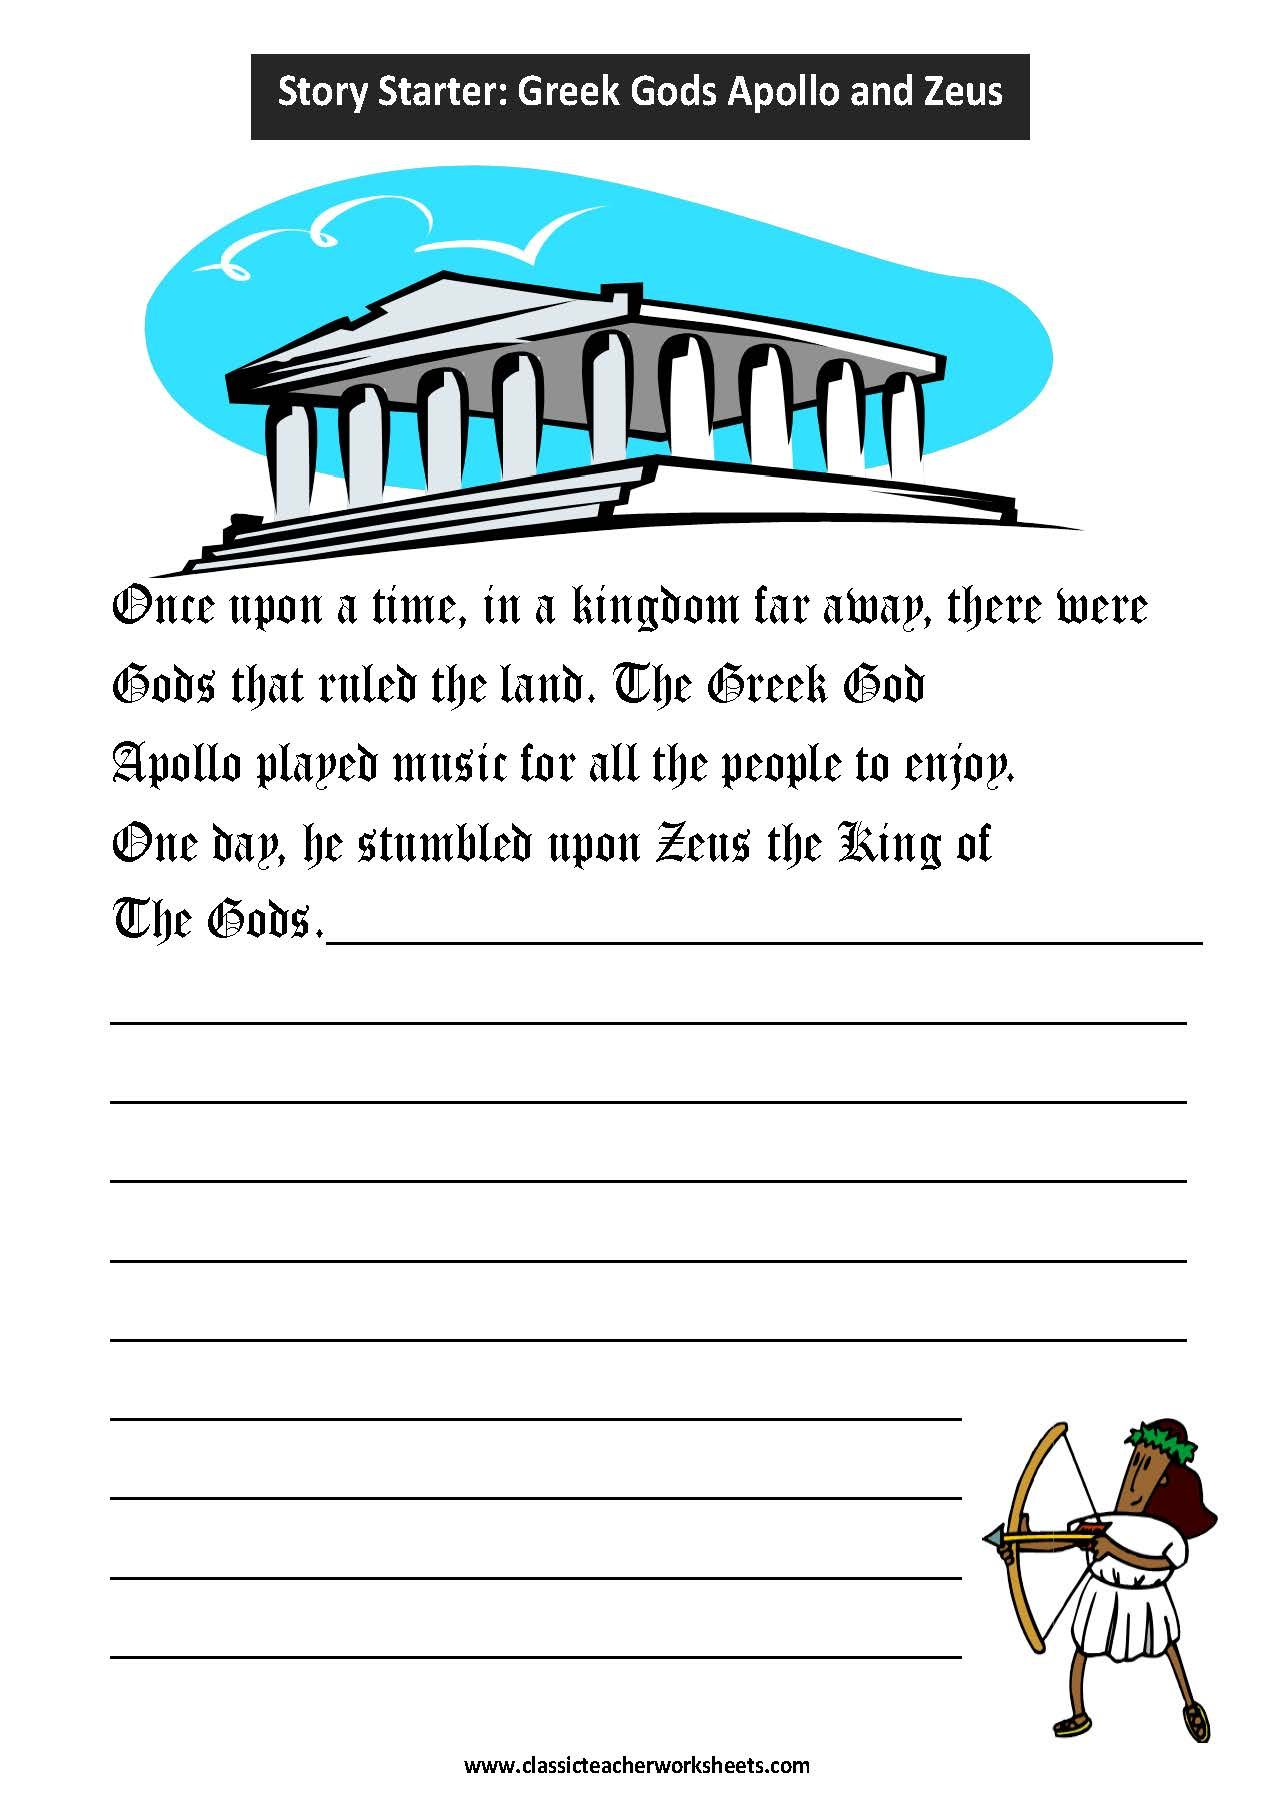 Check Out Our Collection Of Writing Worksheets At Classicteacherworksheets Worksheet Story